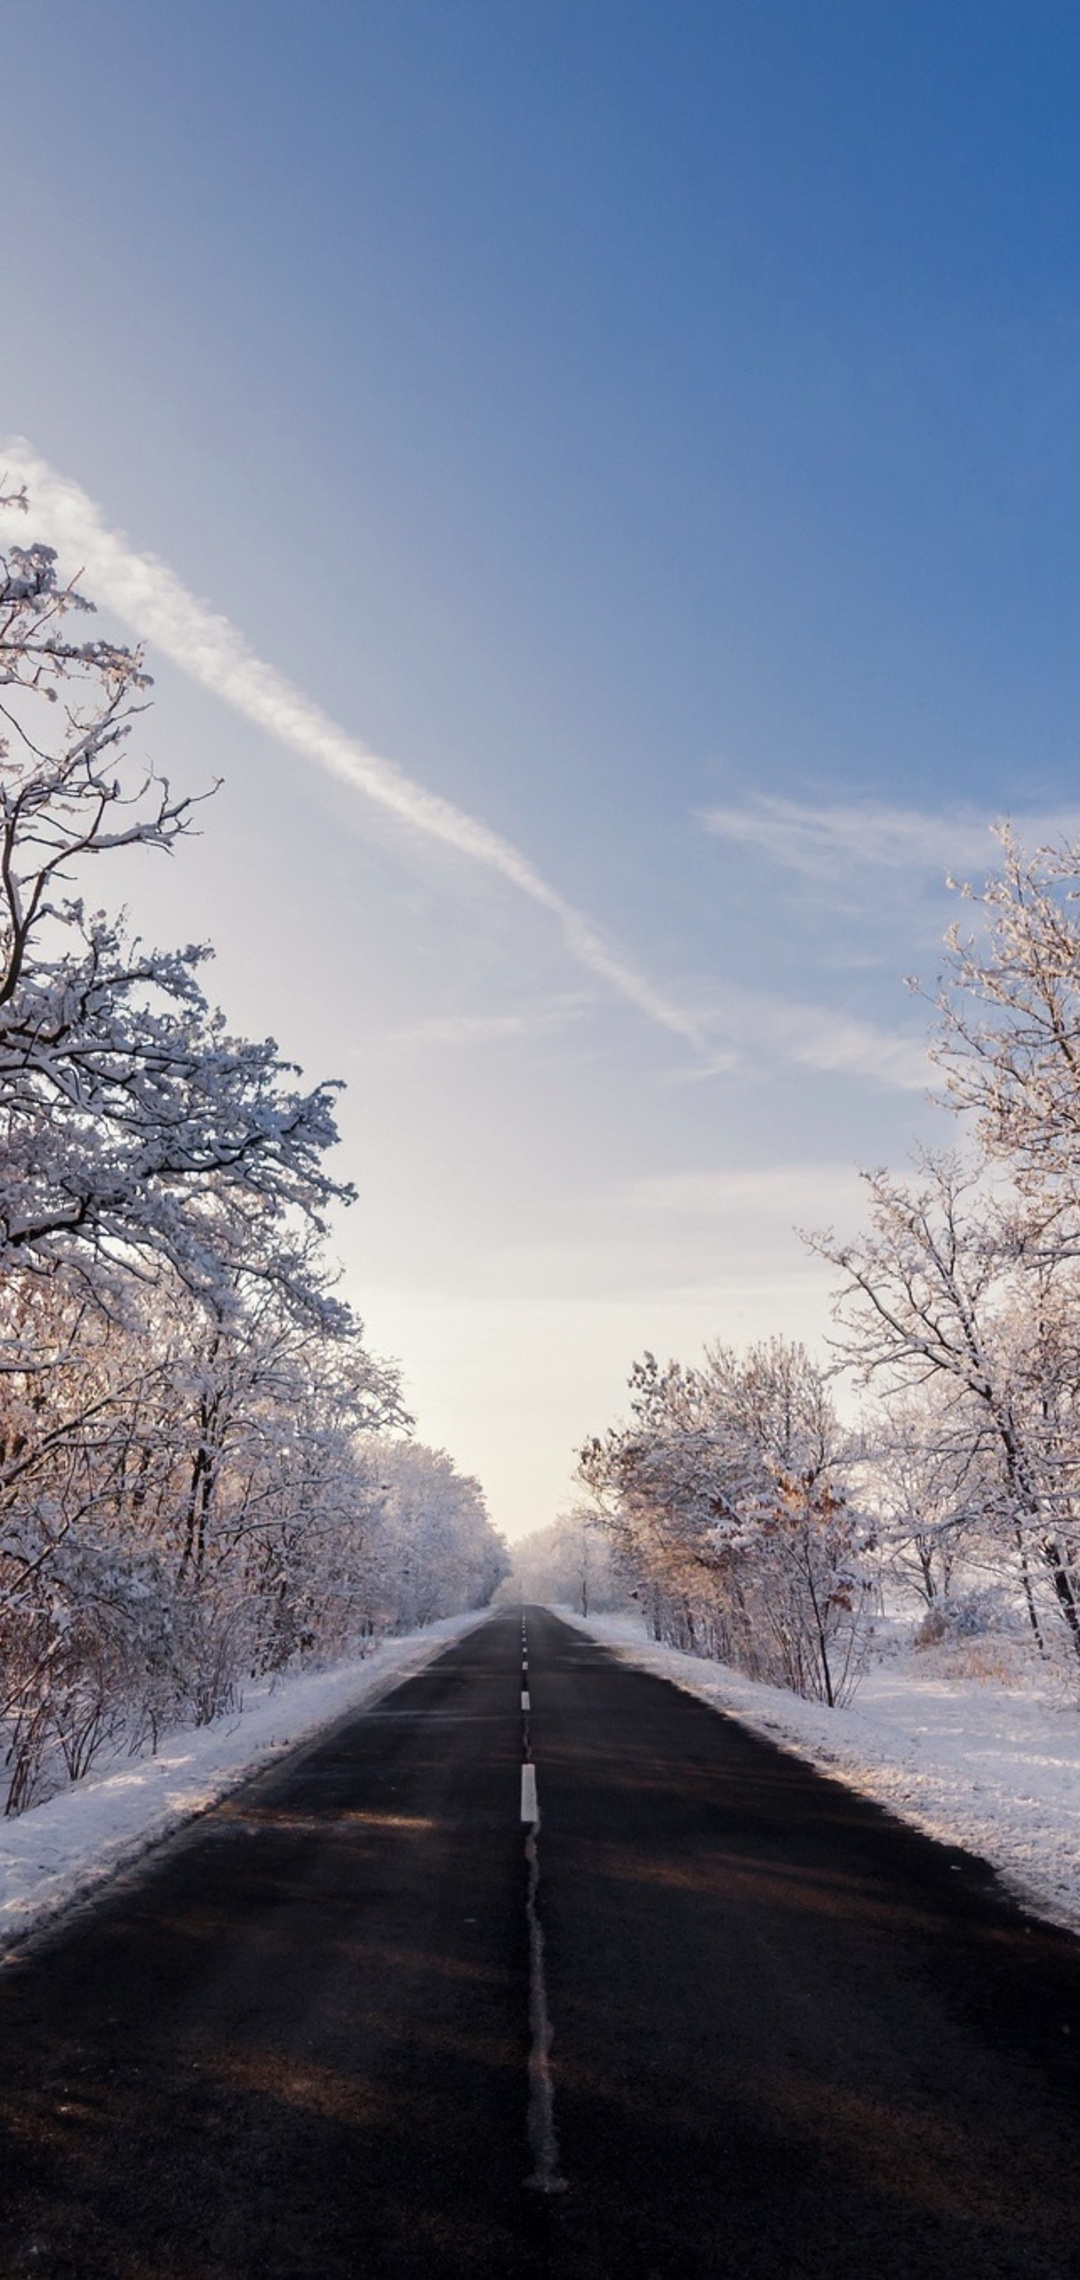 autumn-winter-road-outdoors-yw.jpg